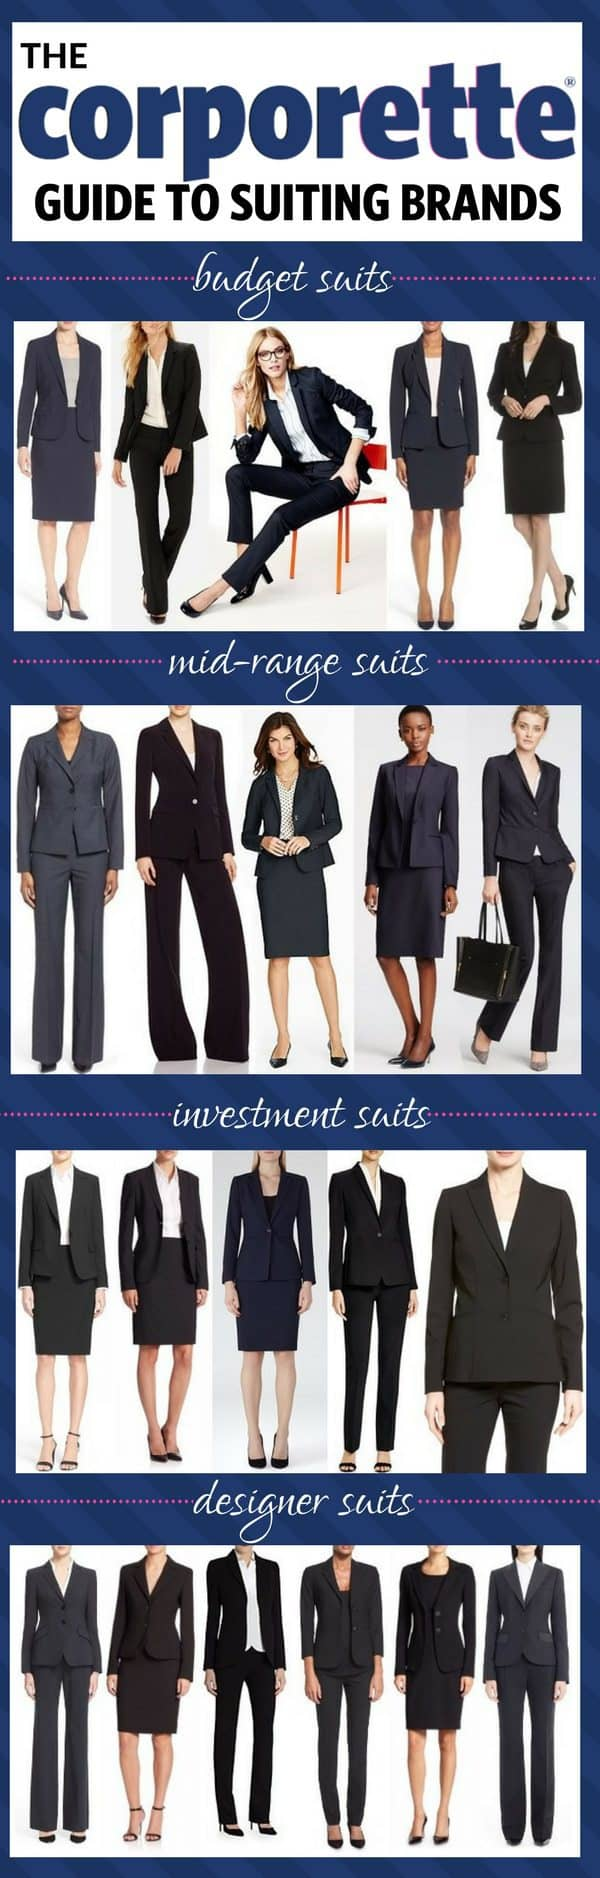 Suits for Women: A Guide to the Best Suiting Brands for Women, from Budget Suits to Designer Suits | Corporette